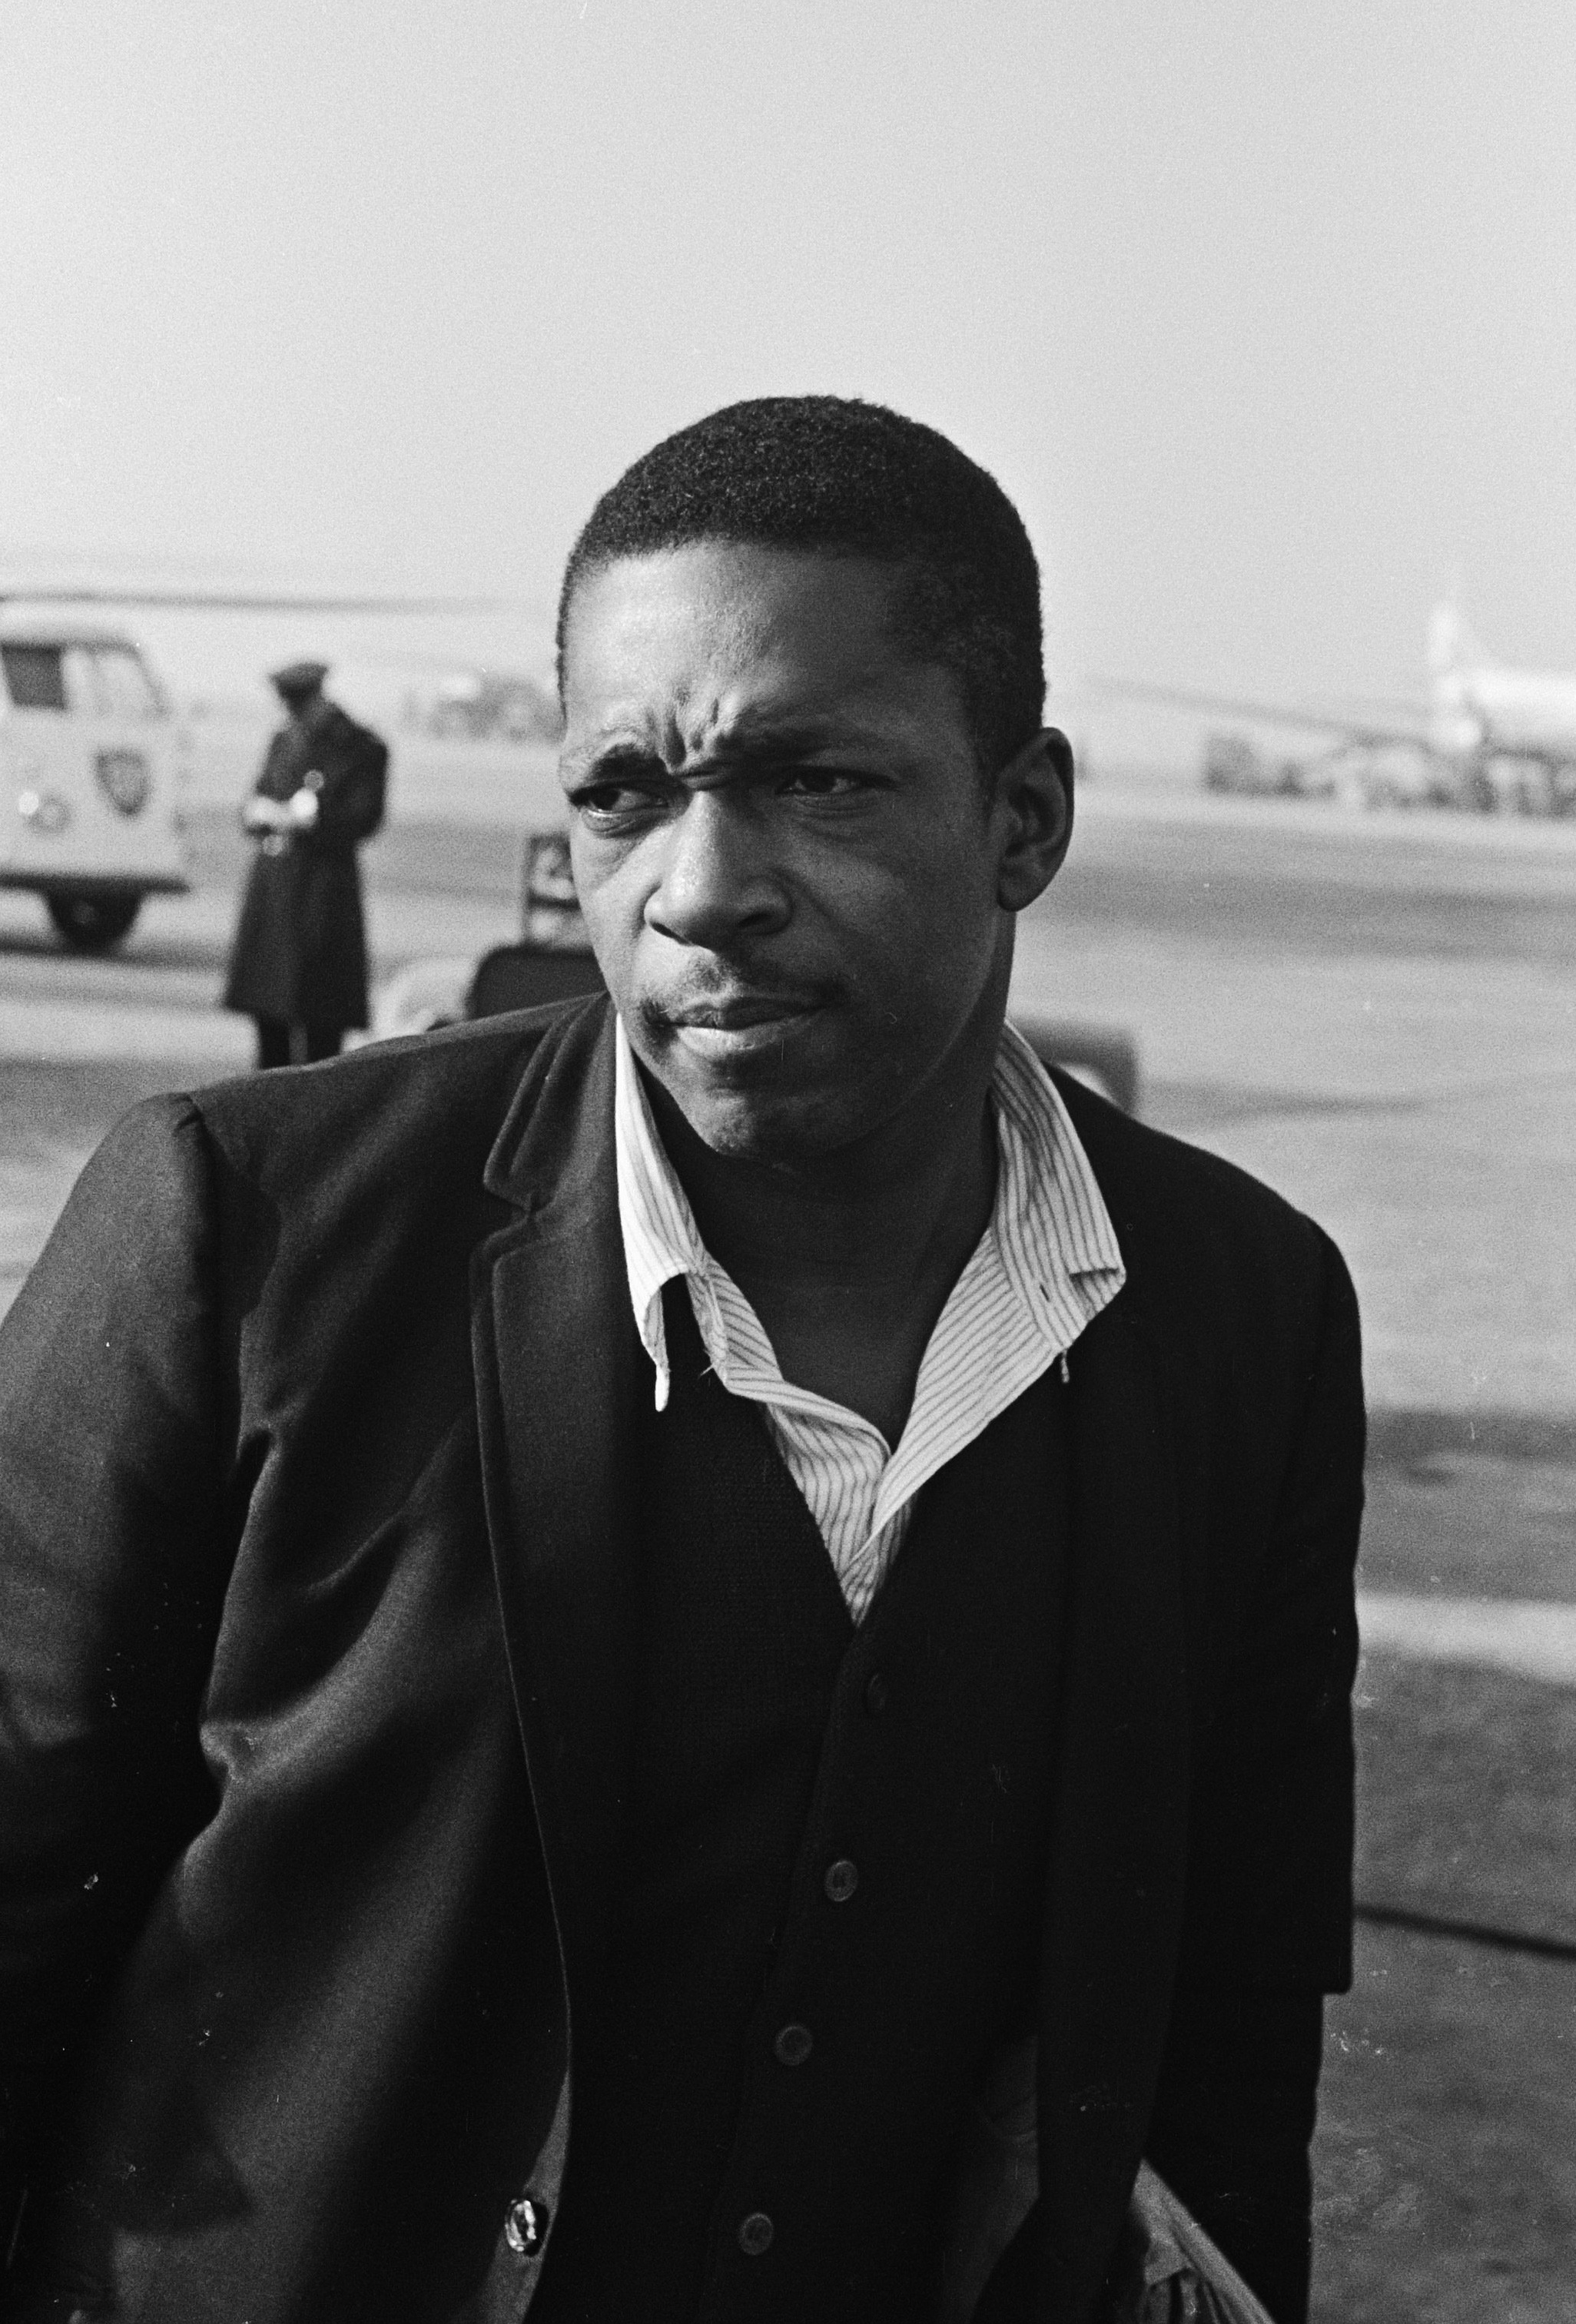 https://upload.wikimedia.org/wikipedia/commons/6/66/John_Coltrane_1963.jpg